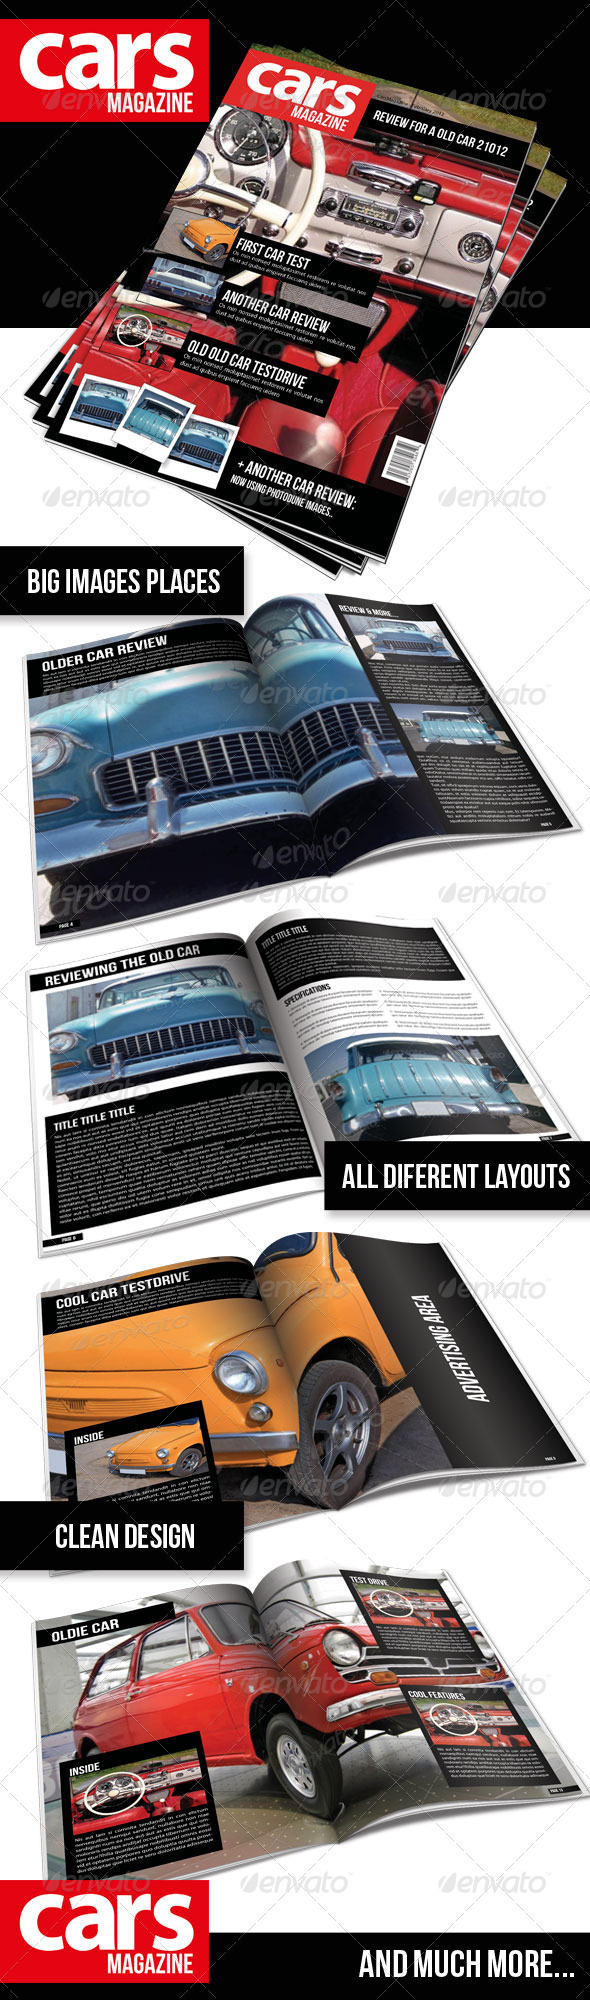 GraphicRiver Cars Magazine Indesign Template 1488065